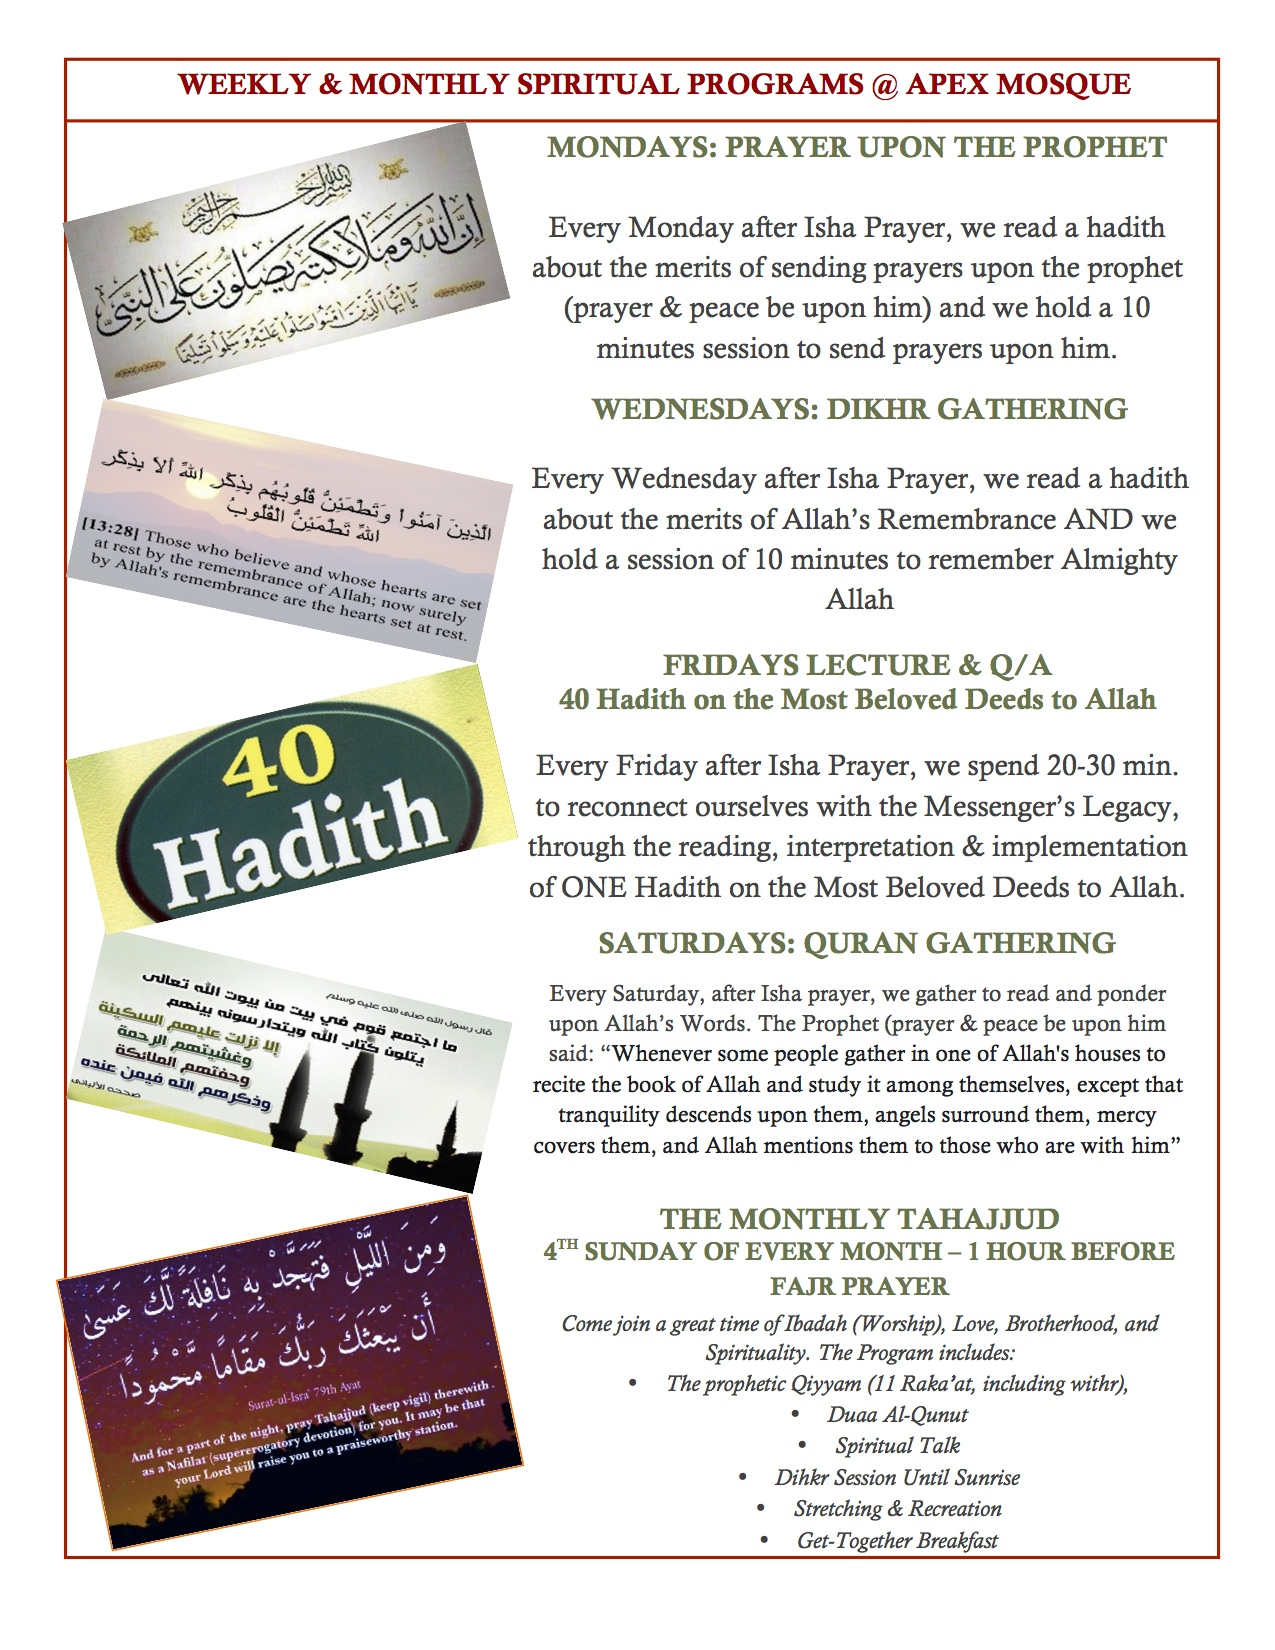 Weekly & Monthly Programs